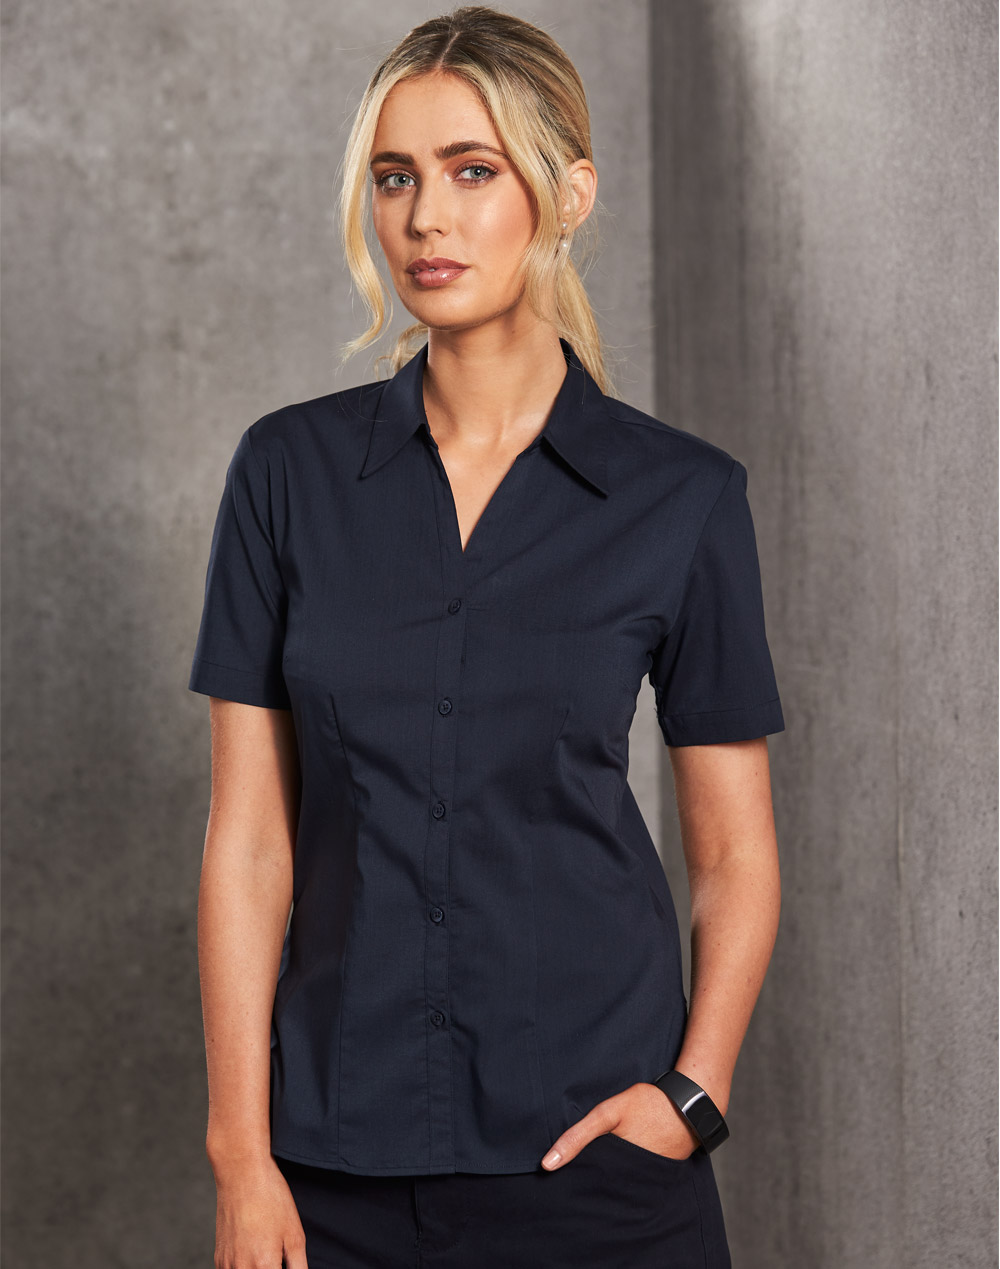 BS07S Executive Lady Short Sleeve